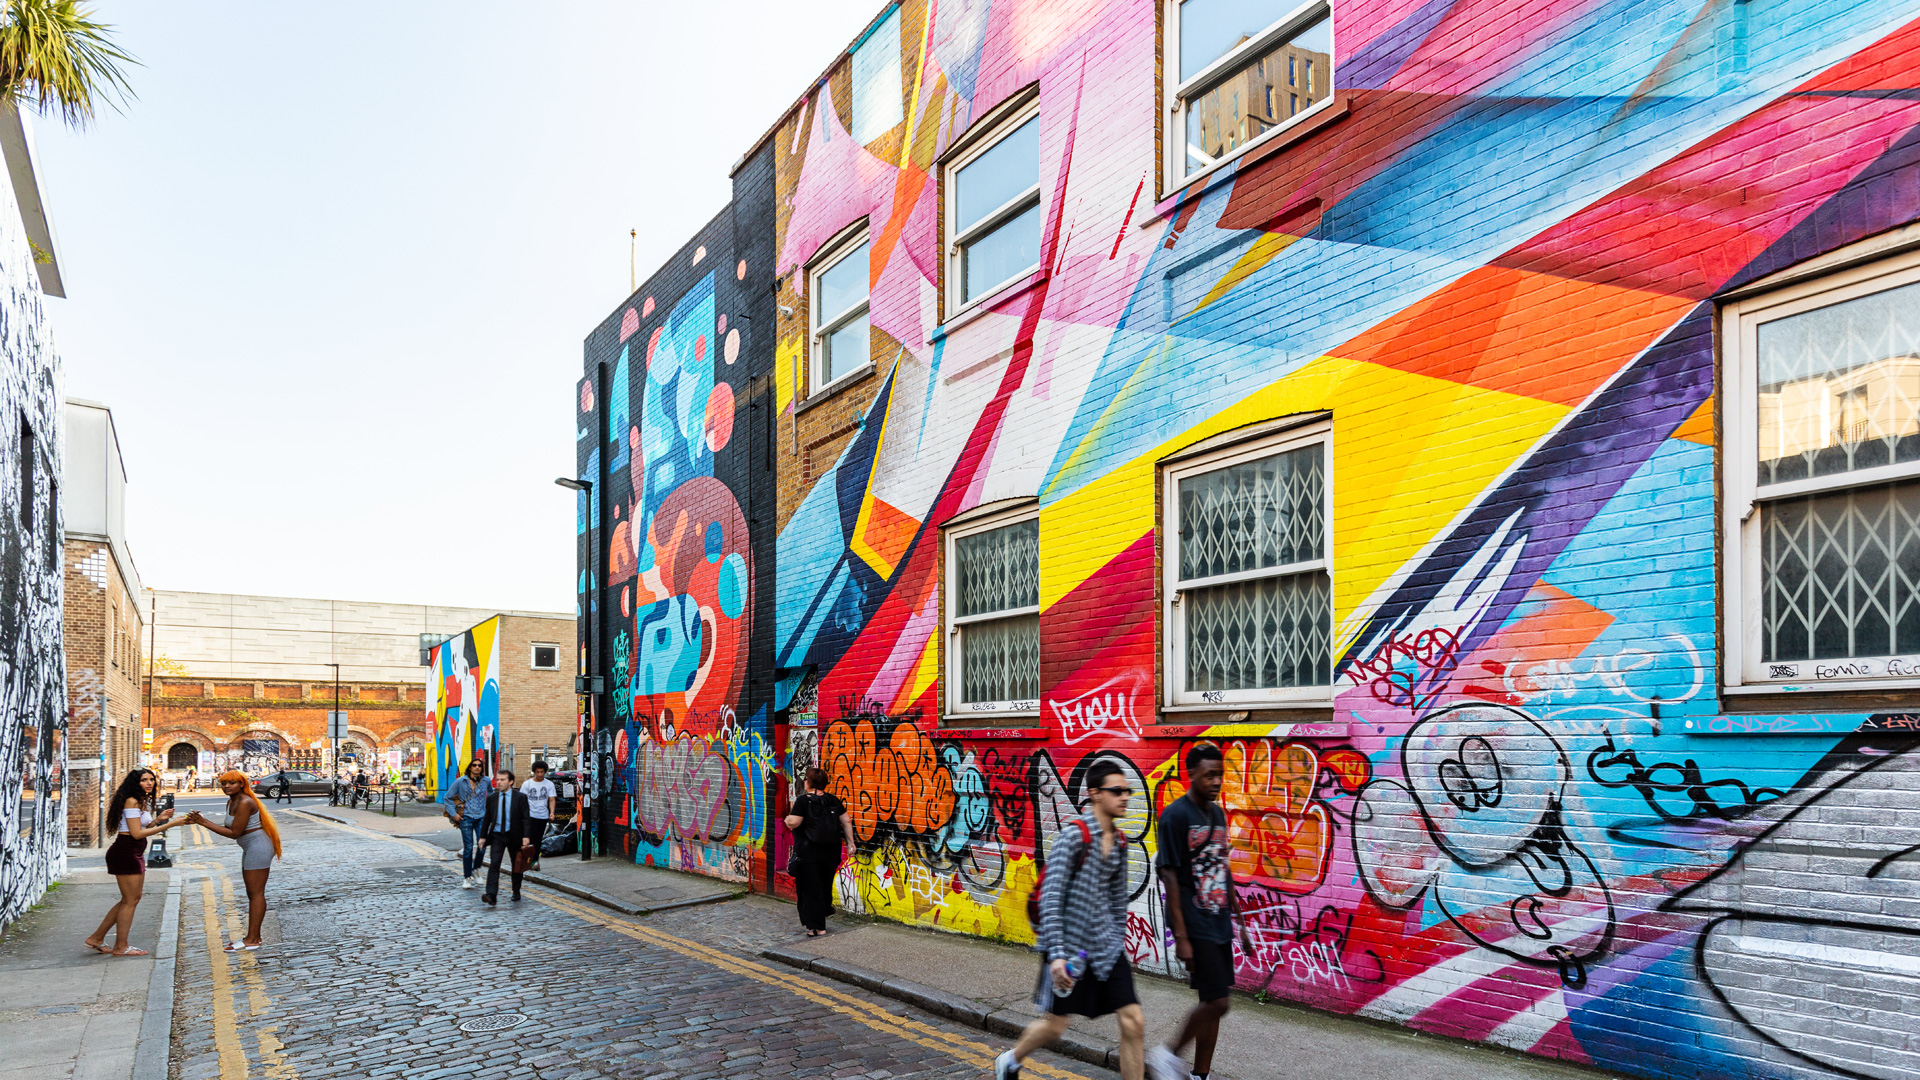 People walking on a cobbled street with buildings covered in bright rainbow coloured graffiti